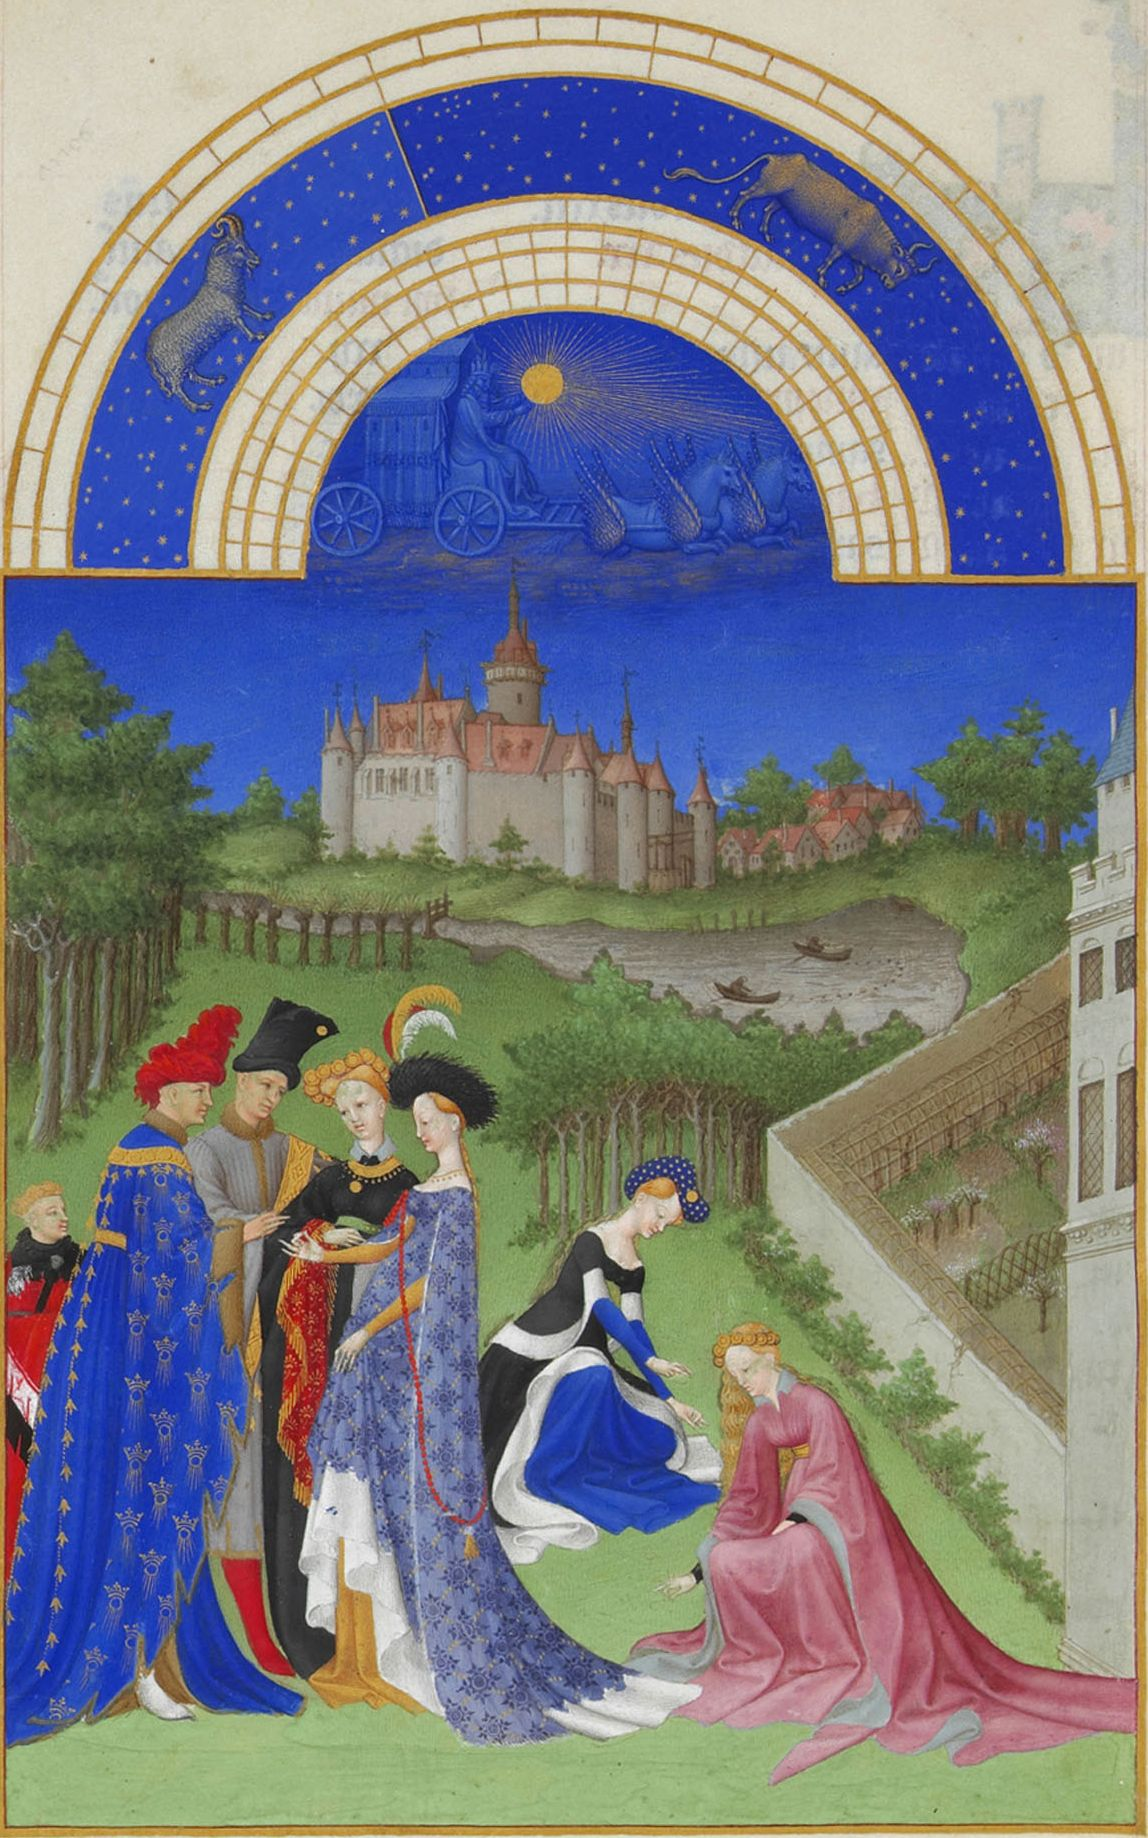 Les Très Riches Heures du duc de Berry,  Avril the Musée Condé, Chantilly.  verso: April; between 1412 and 1416